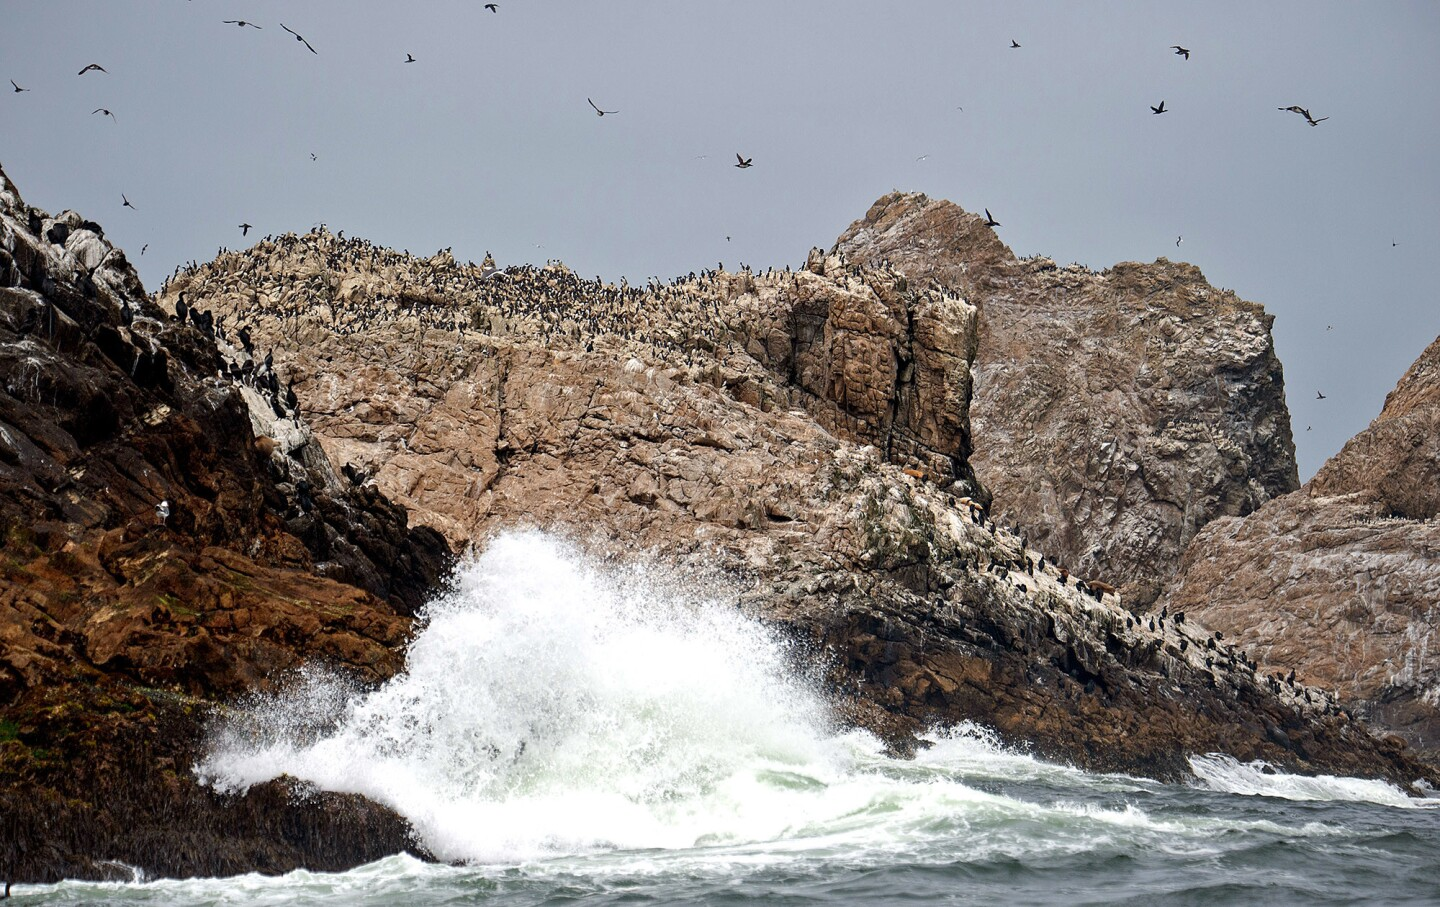 Waves crash ashore on one of the Farallon Islands about 30 miles off the coast of San Francisco.